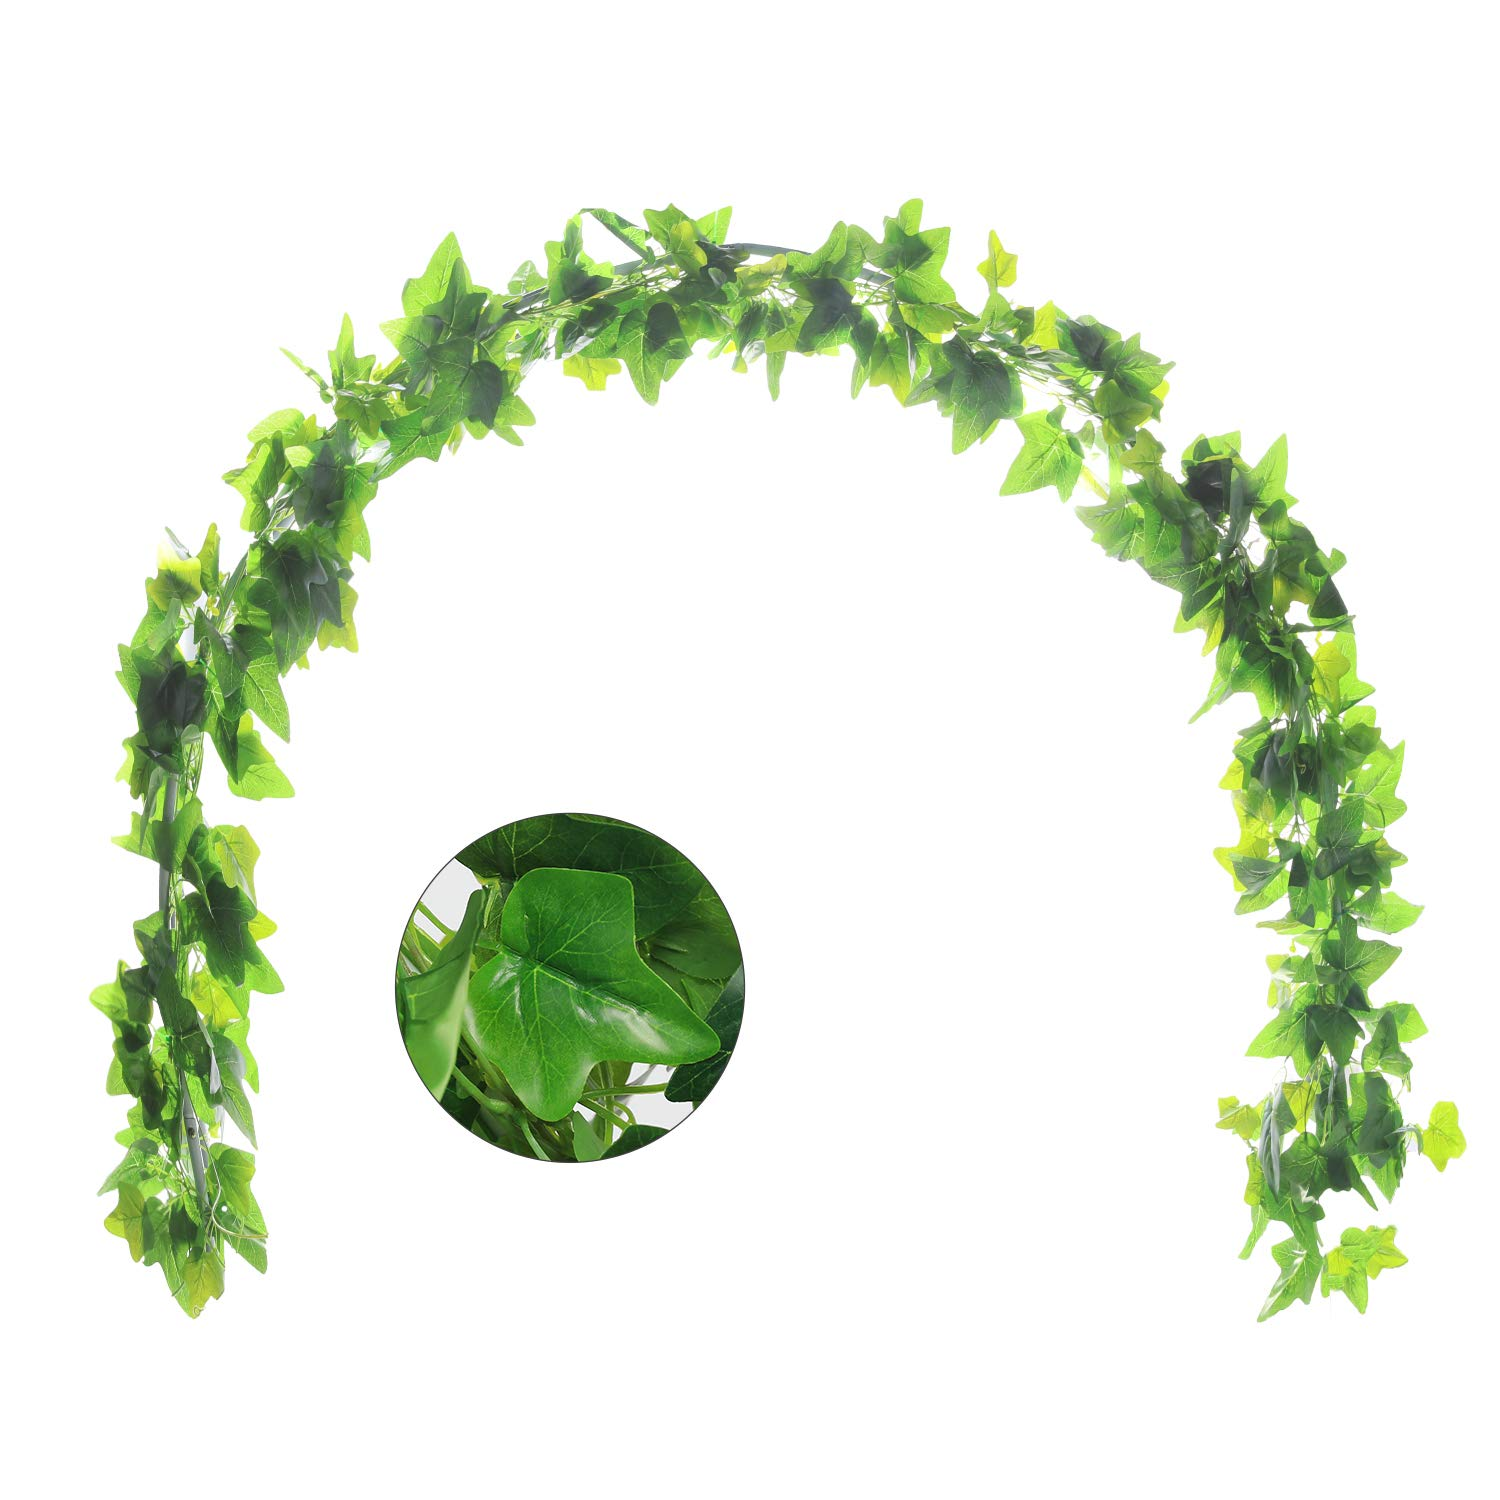 5Pcs 44Ft Artificial Ivy Leaf Garland Plants Vines with leaves Hanging Greenery Fack Ivys Vines for Wedding Outside Party Home Decor by JUSTOYOU